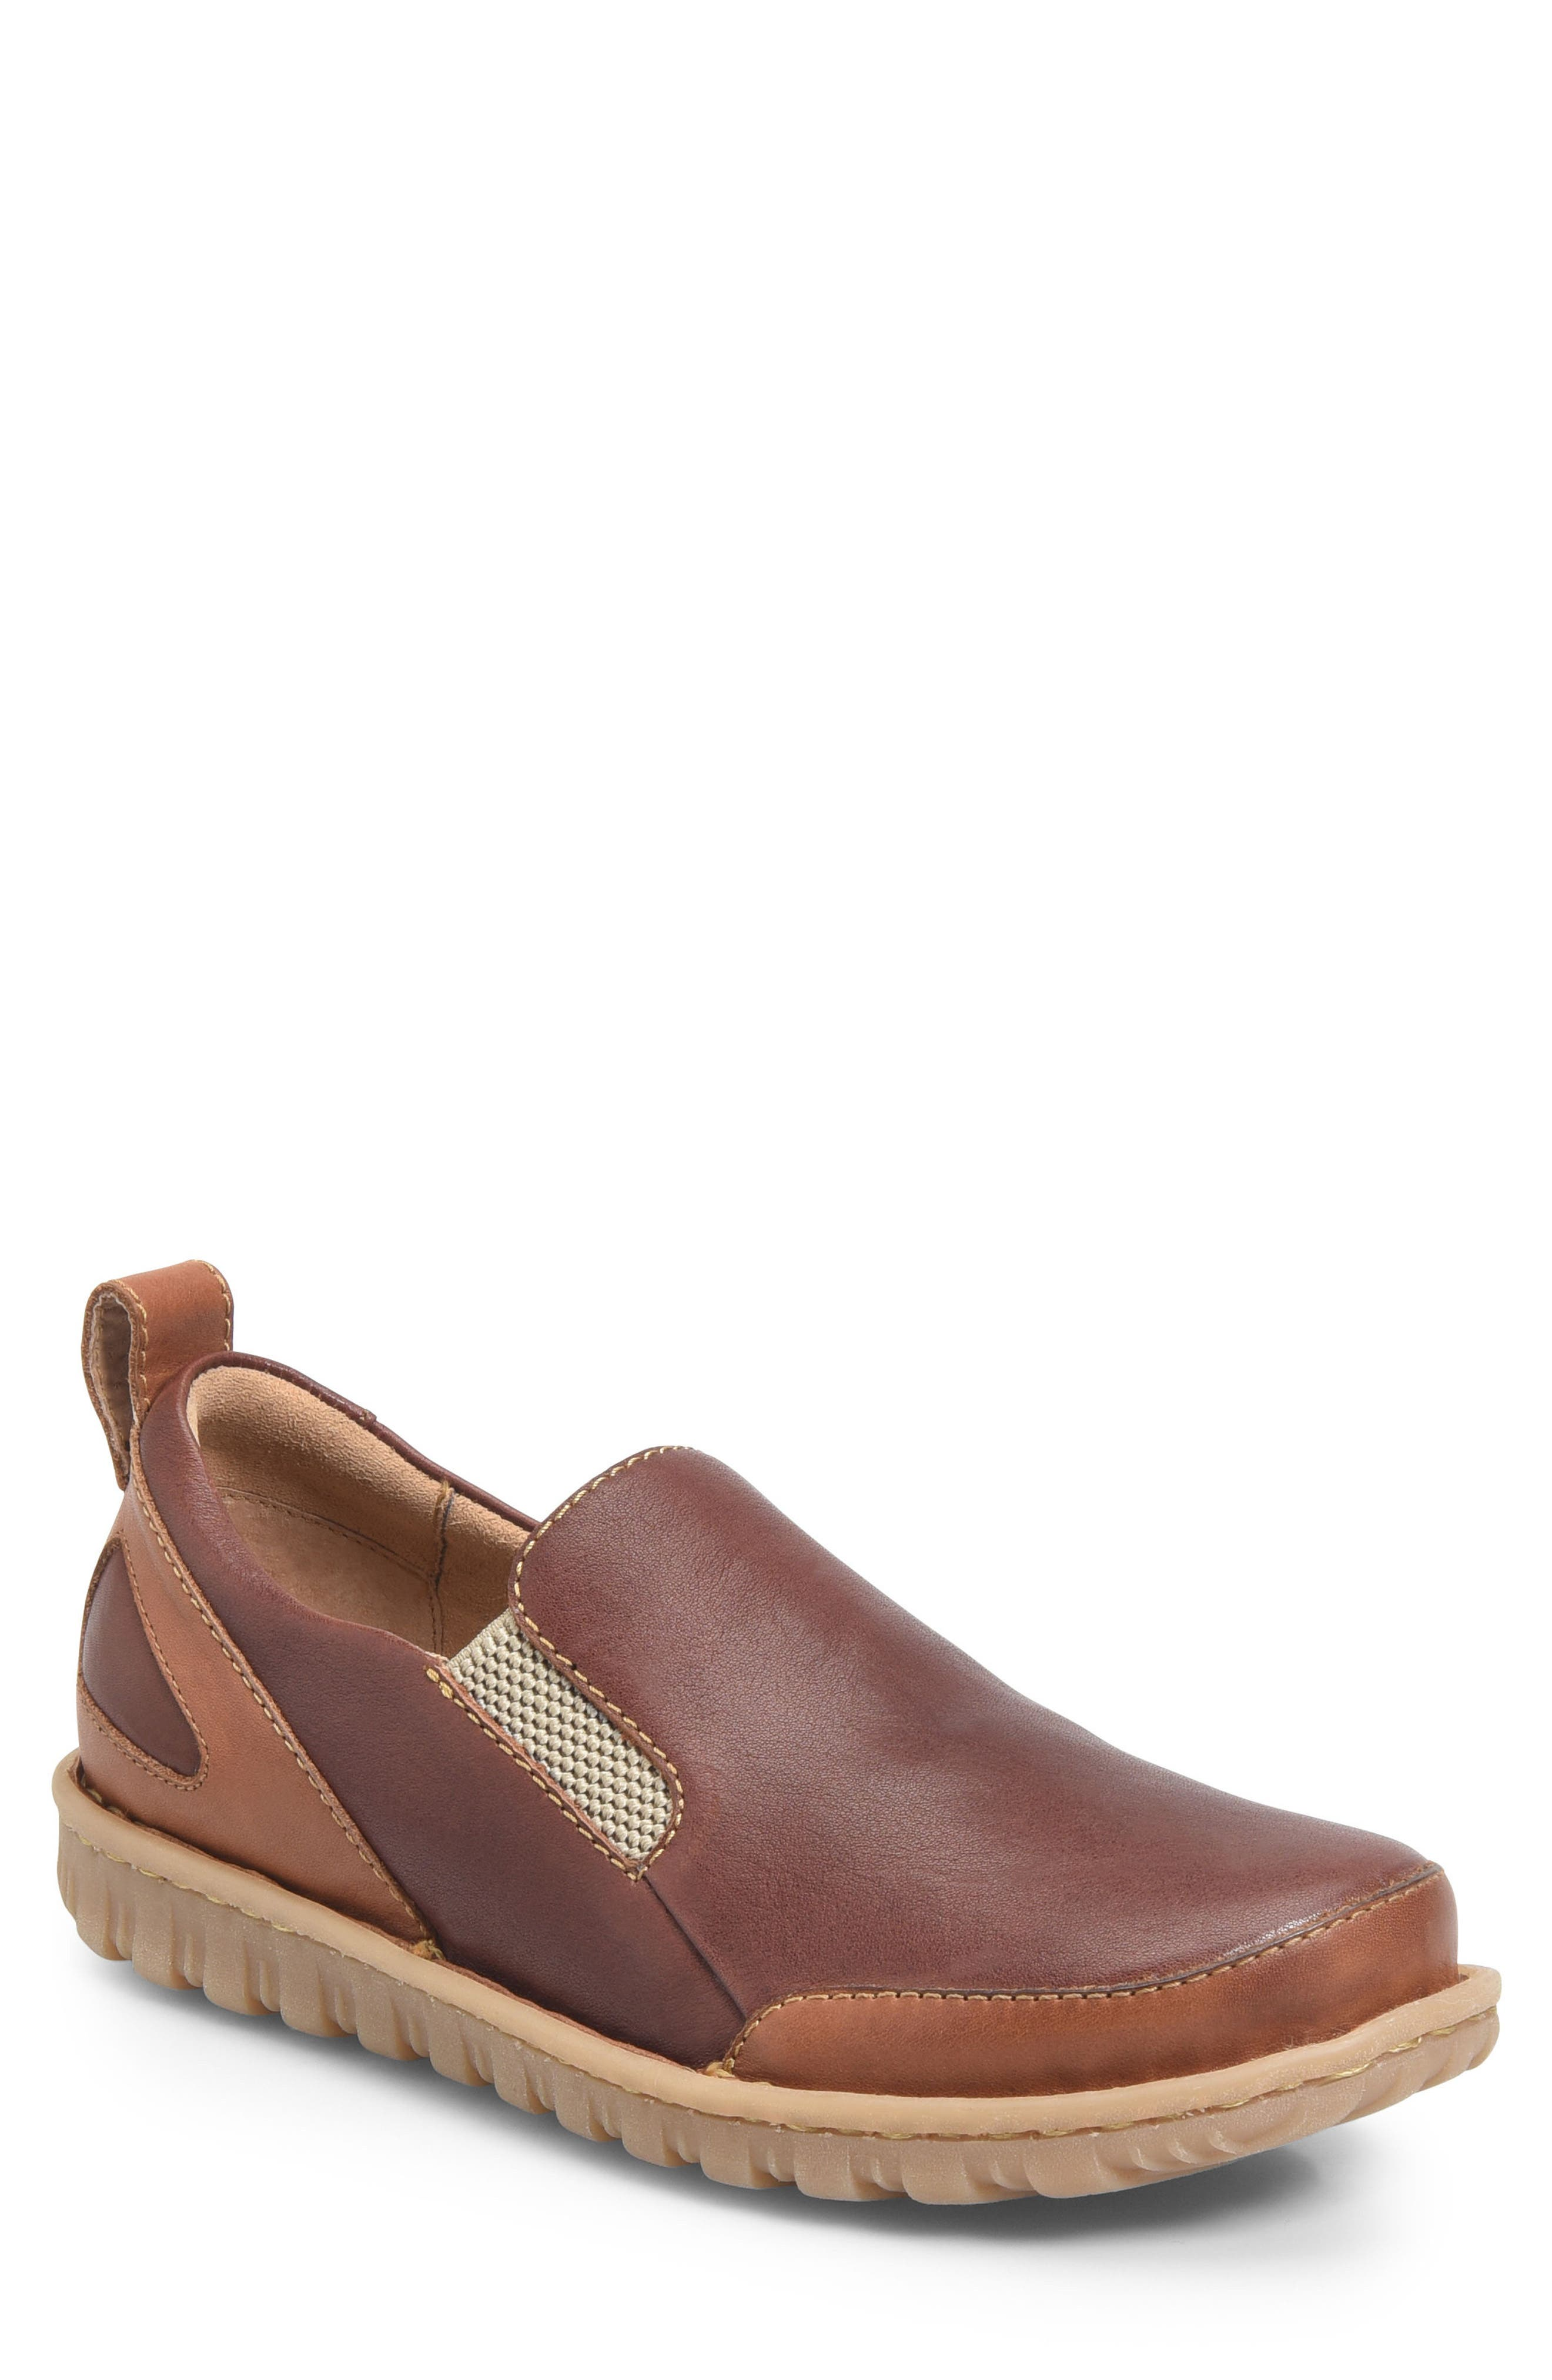 Pepper Slip-On,                         Main,                         color, BROWN/ RUST LEATHER